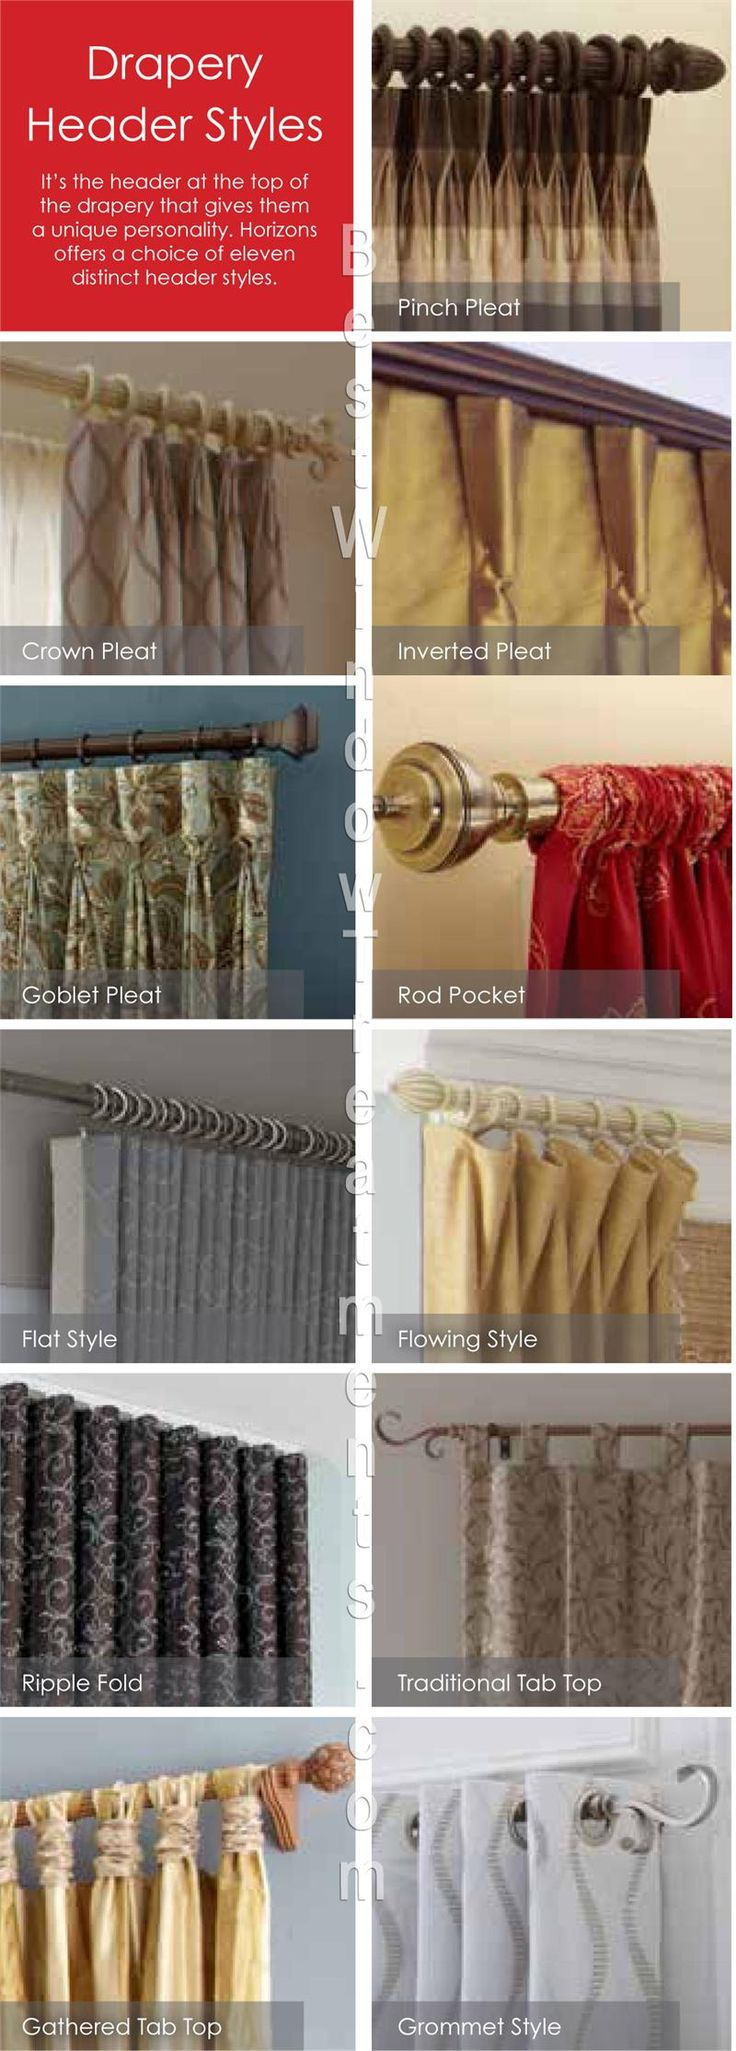 Flat panel curtains - Custom Drapery Panel Header Styles I Like The Contemporary Look Of The Flowing